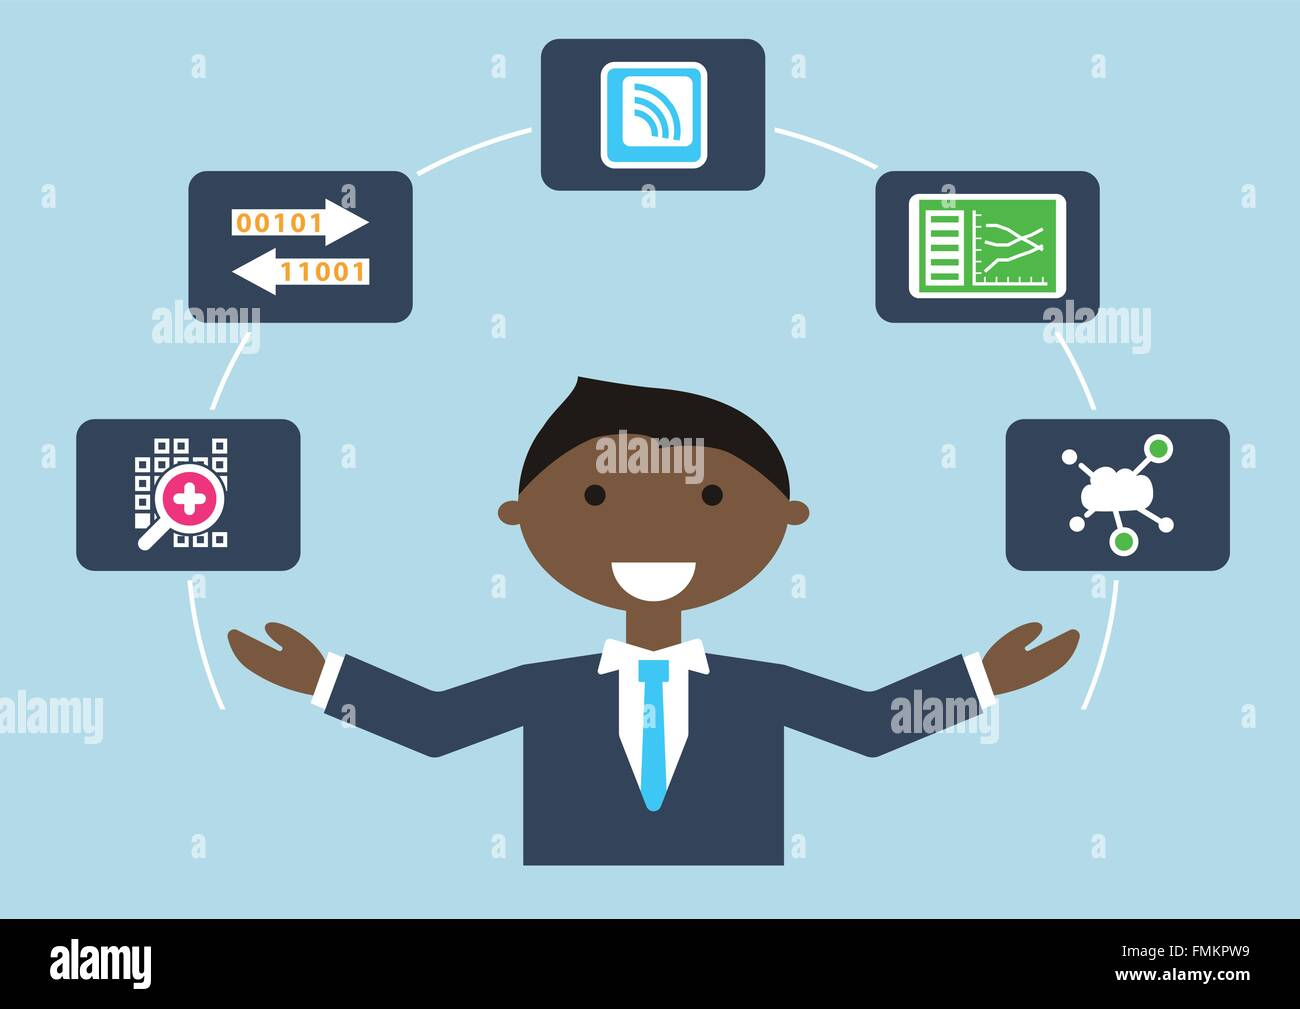 People at work: Internet of things (IOT) IT expert job profile visualized by person multitasking various activities - Stock Vector